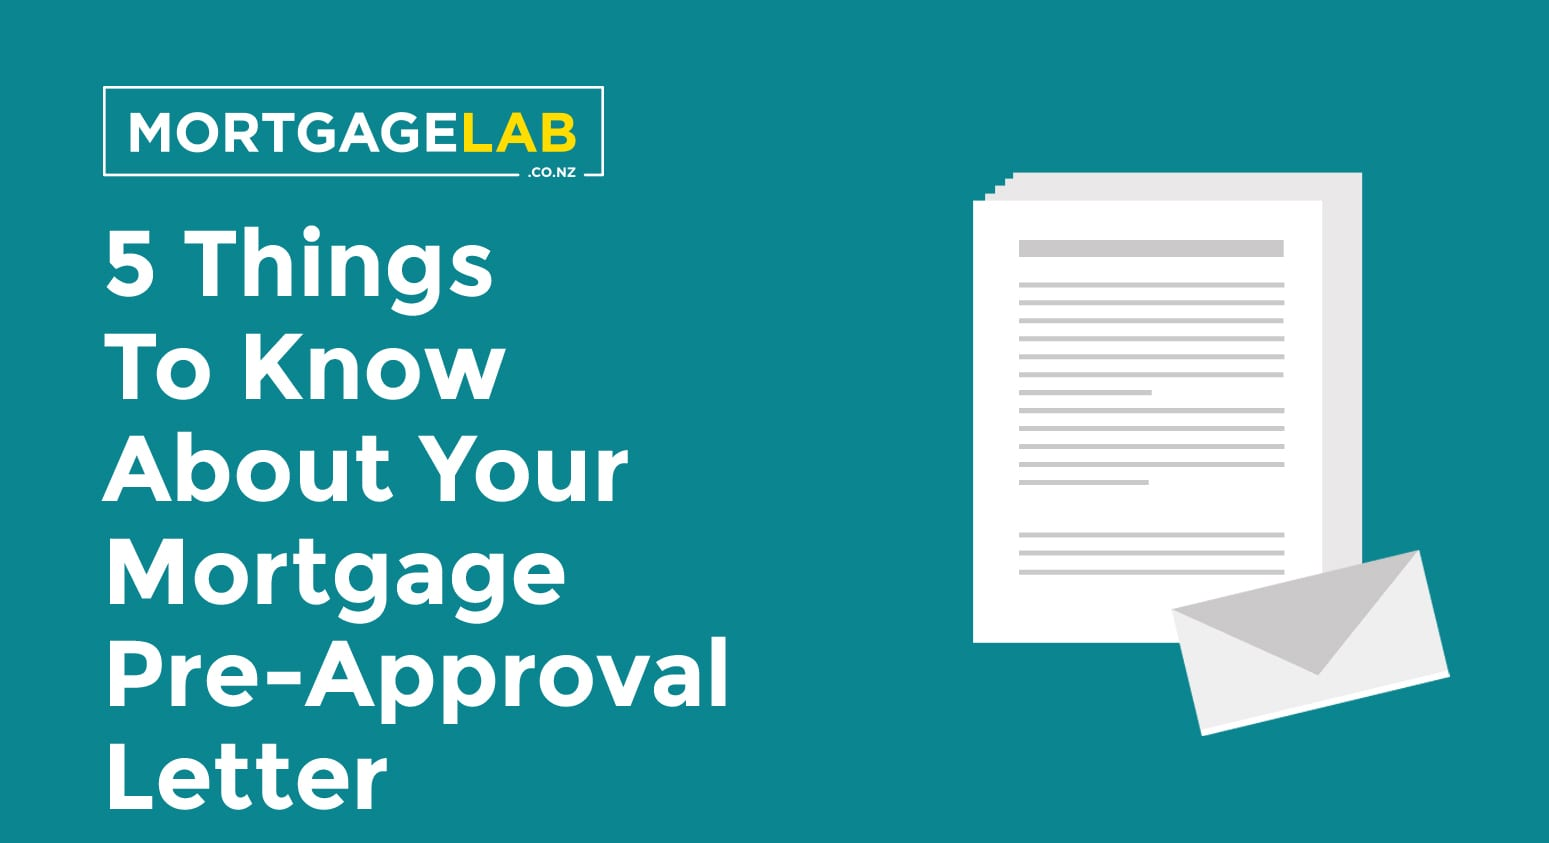 5 Things To Know About Your Mortgage Pre-Approval Letter of Offer